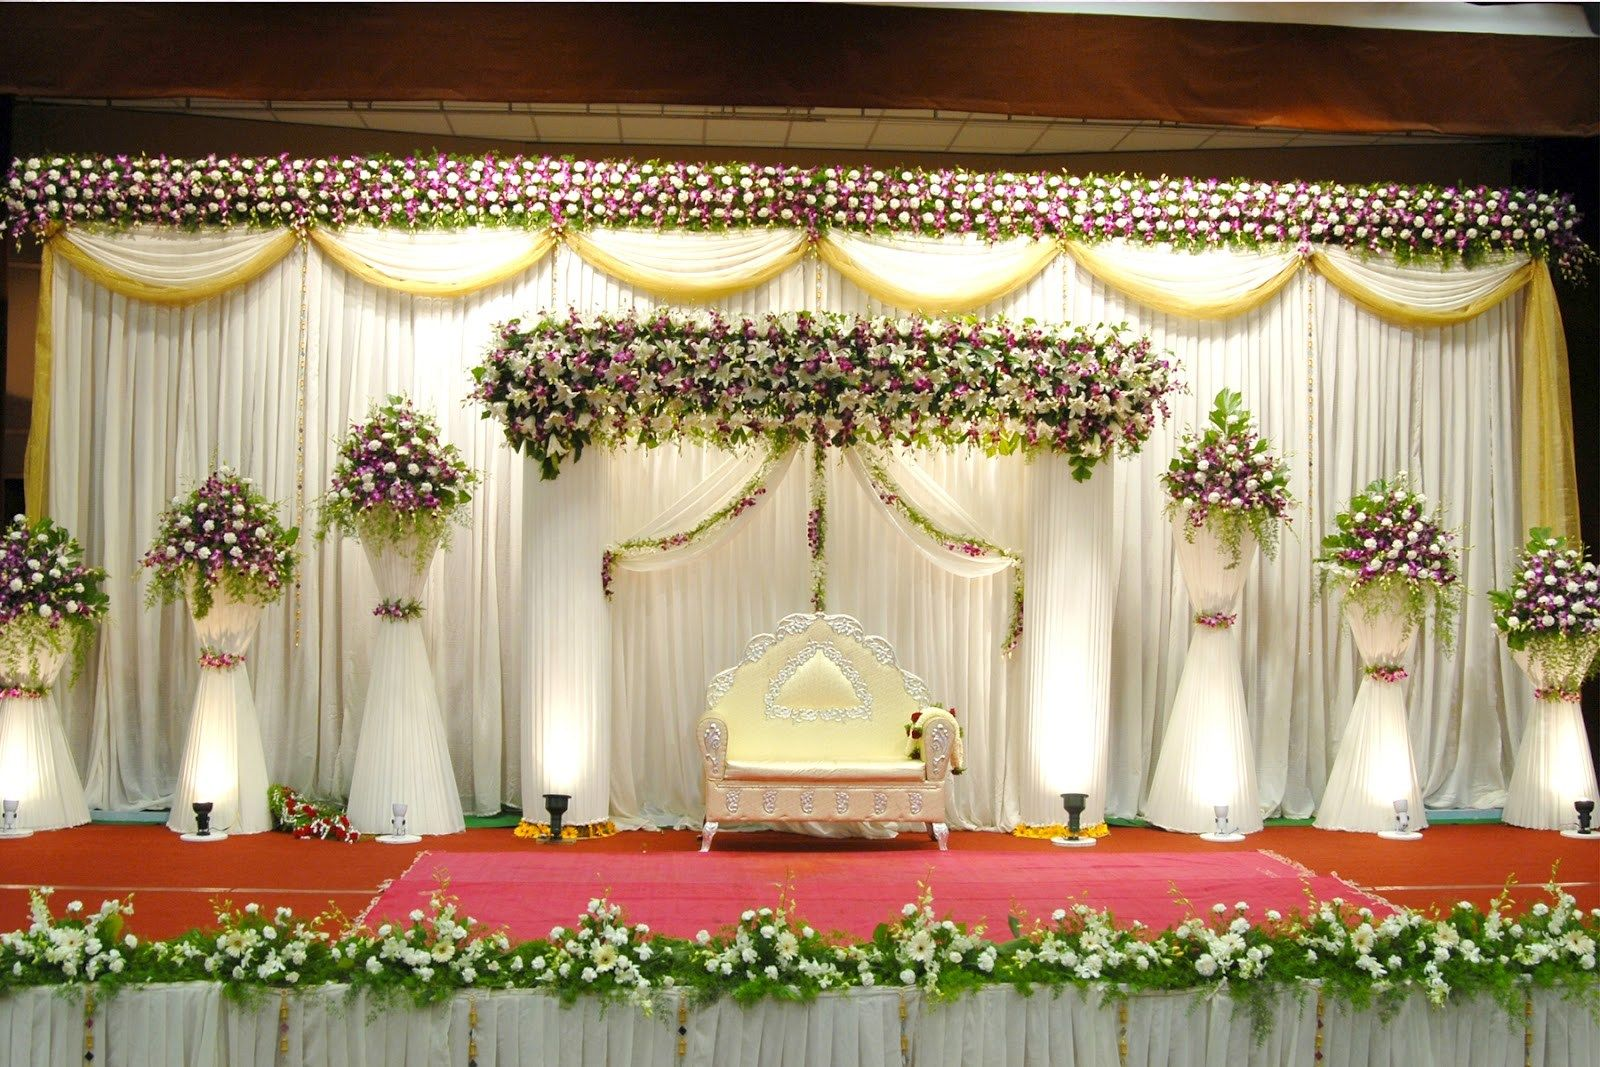 Best wedding stage decoration idea for indian weddings wedding best wedding stage decoration idea for indian weddings junglespirit Gallery